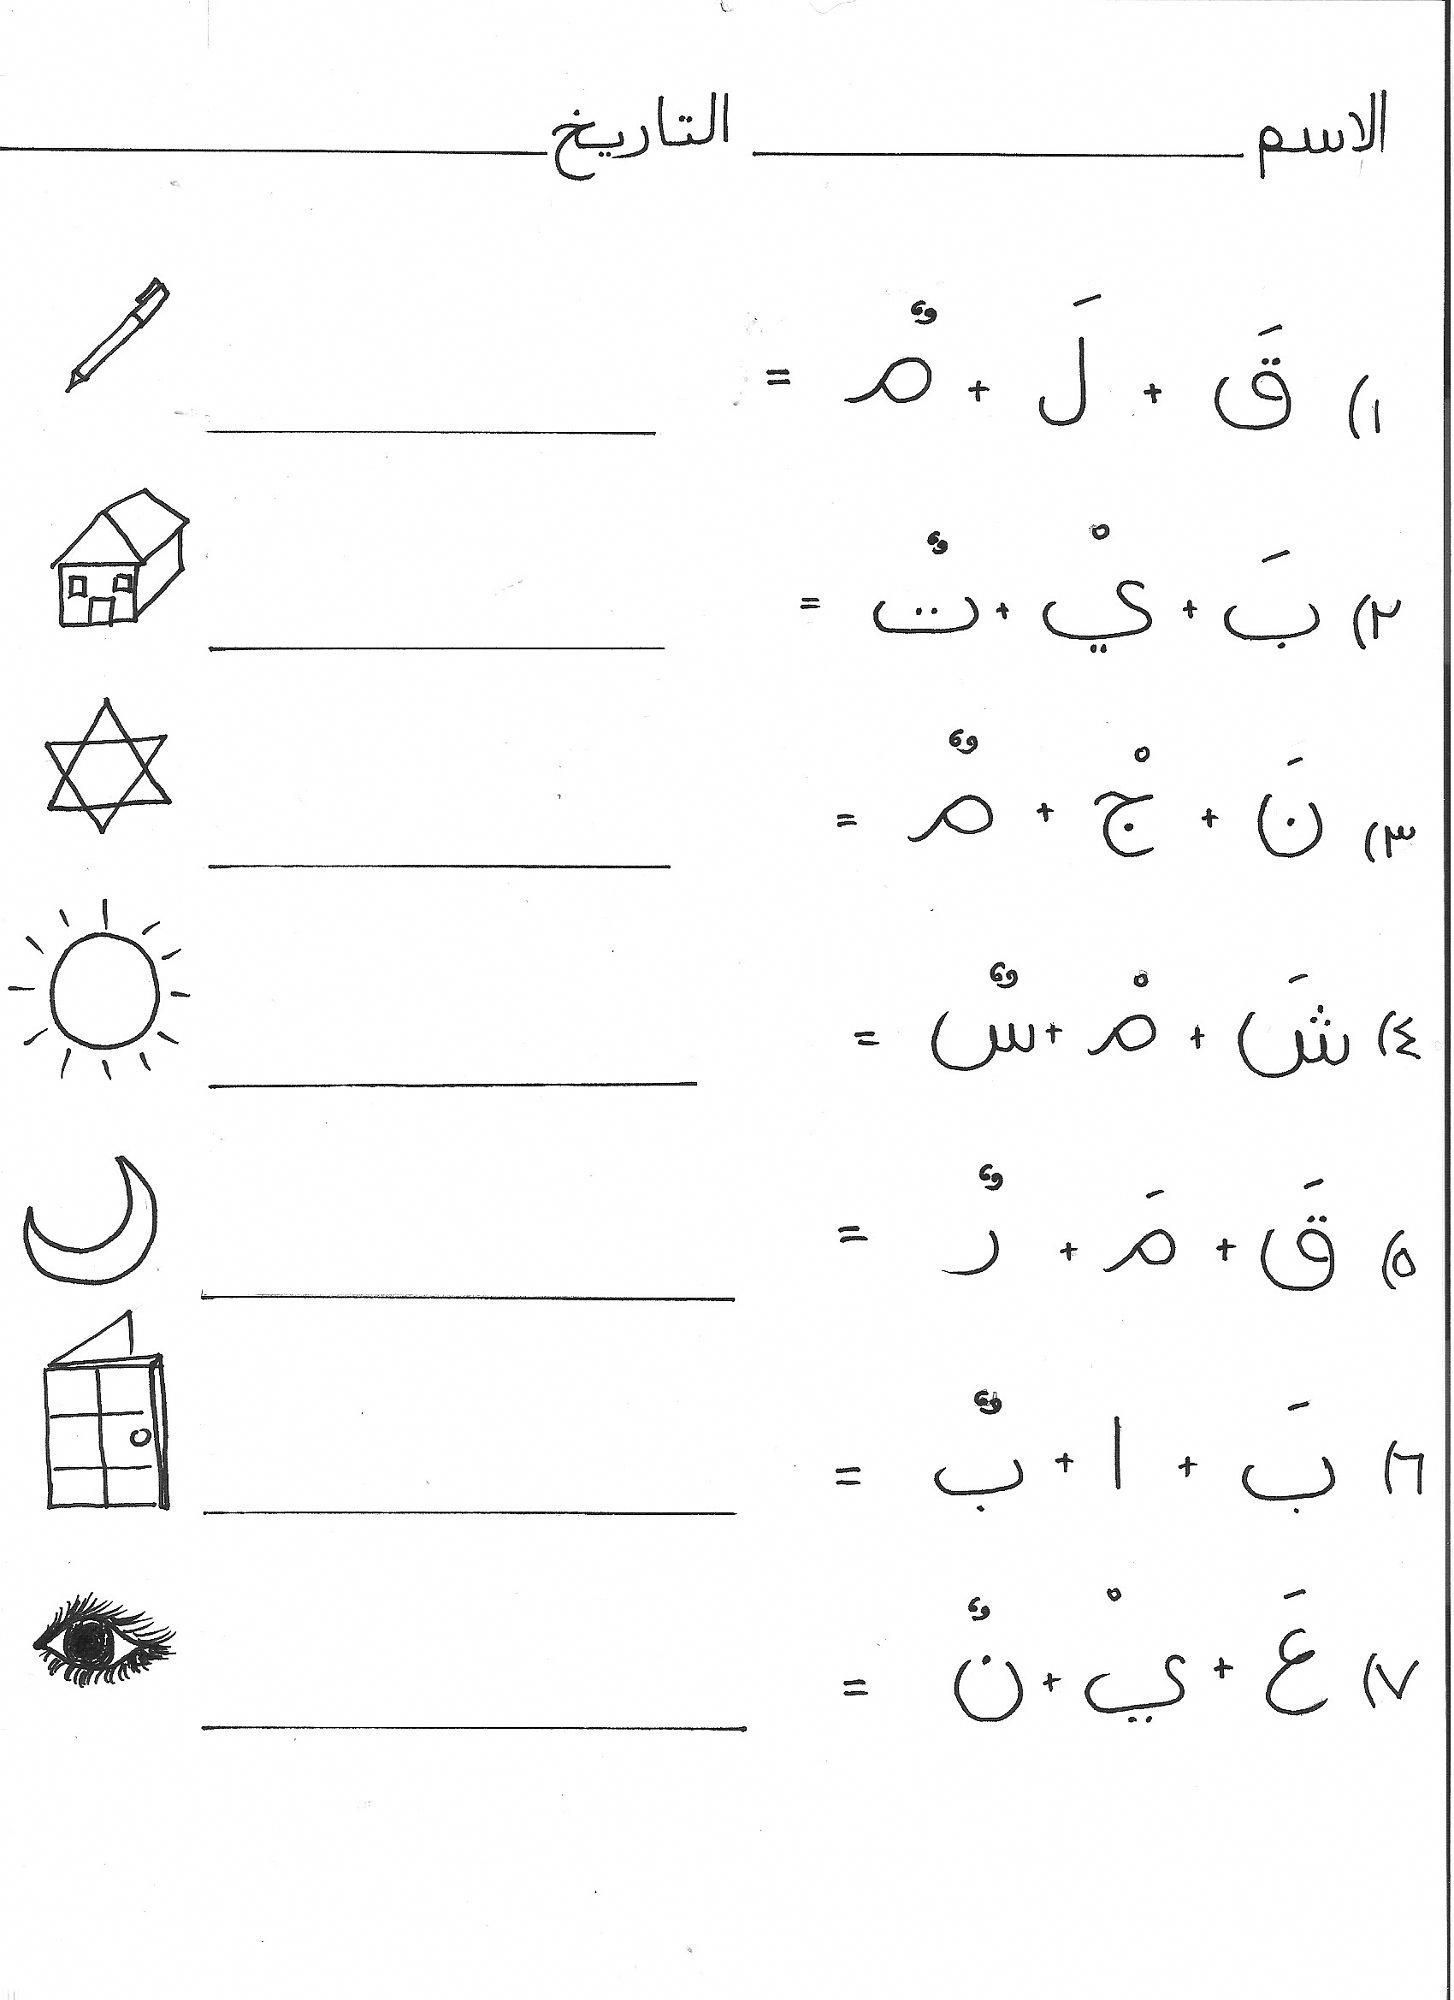 Arabic Alphabet Writing Practice Worksheets Arabic